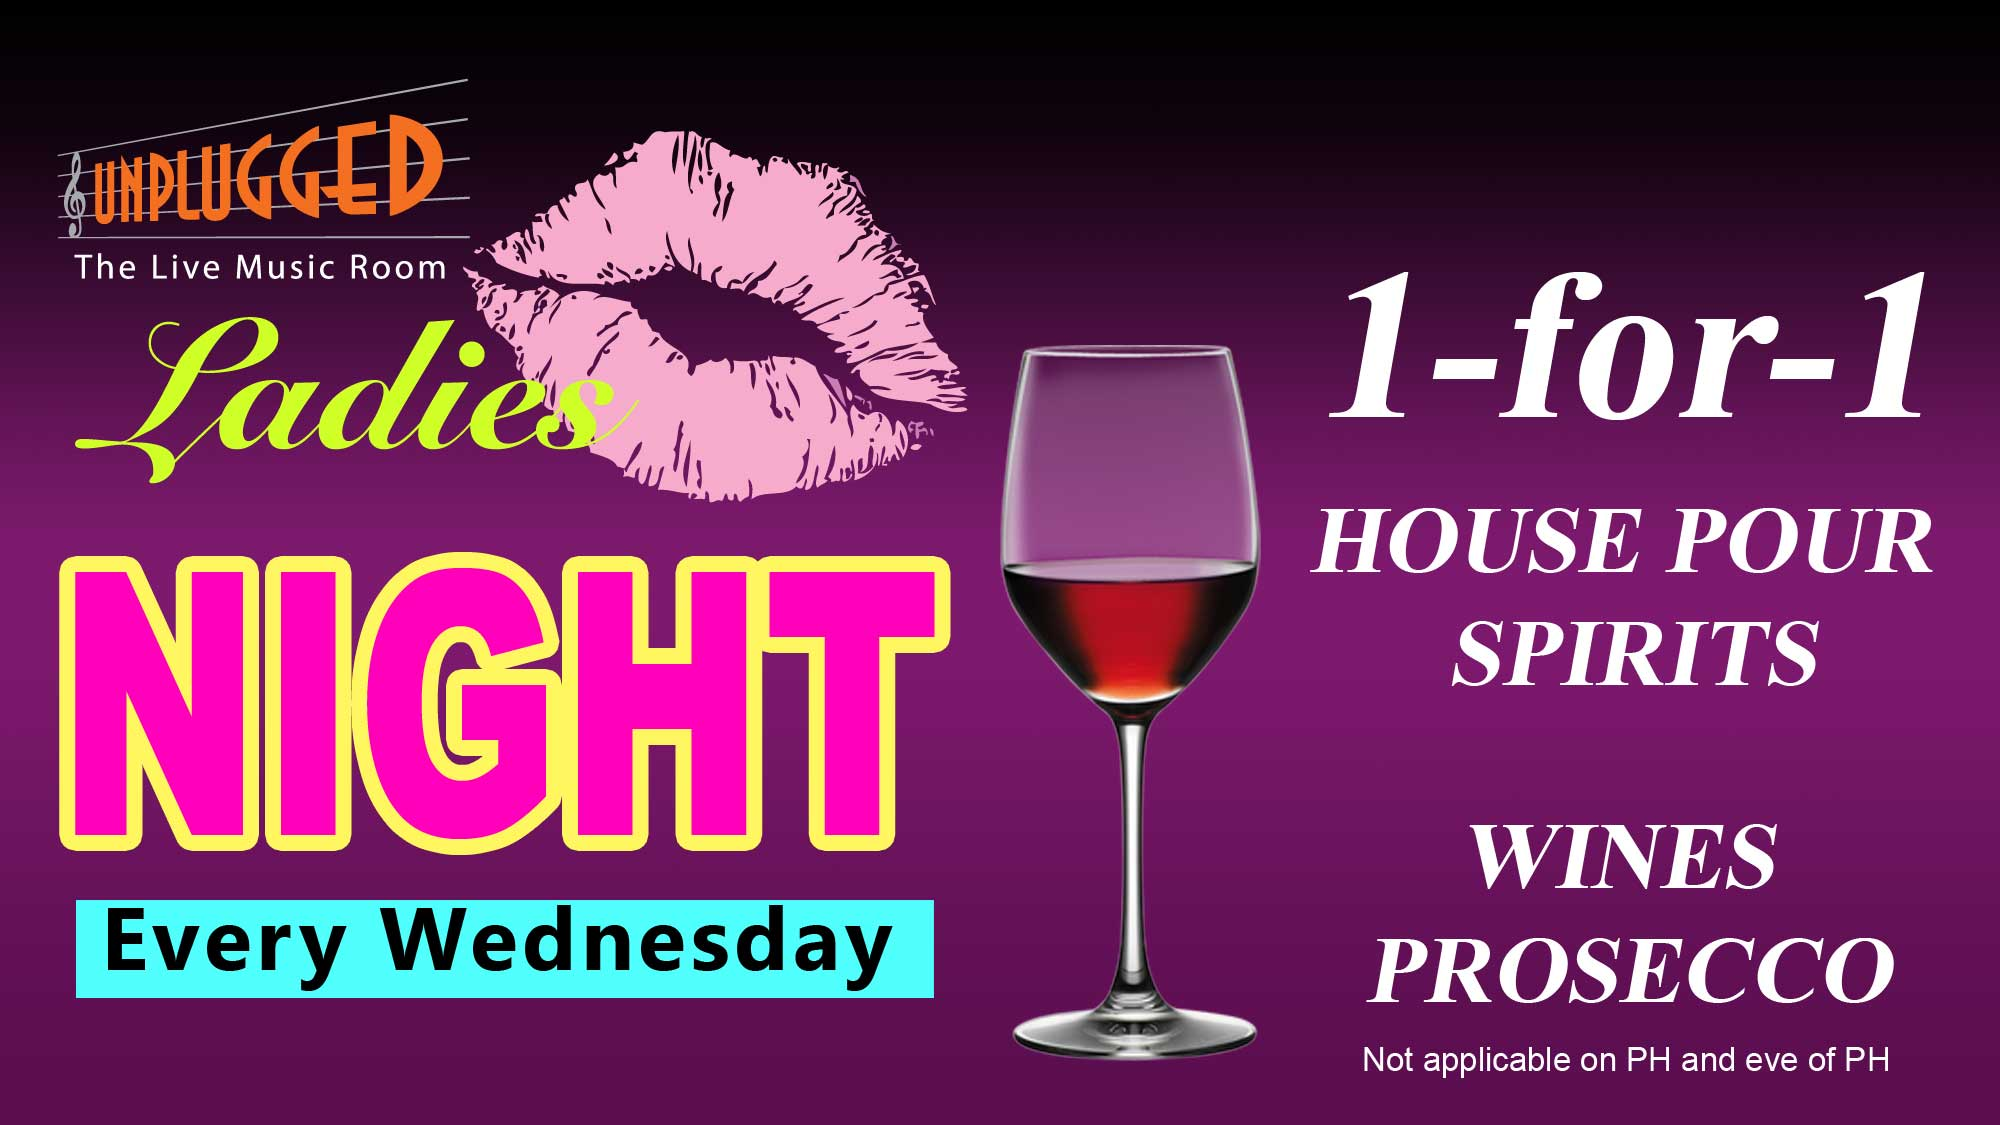 Wednesday-LadiesNight-WEB.jpg